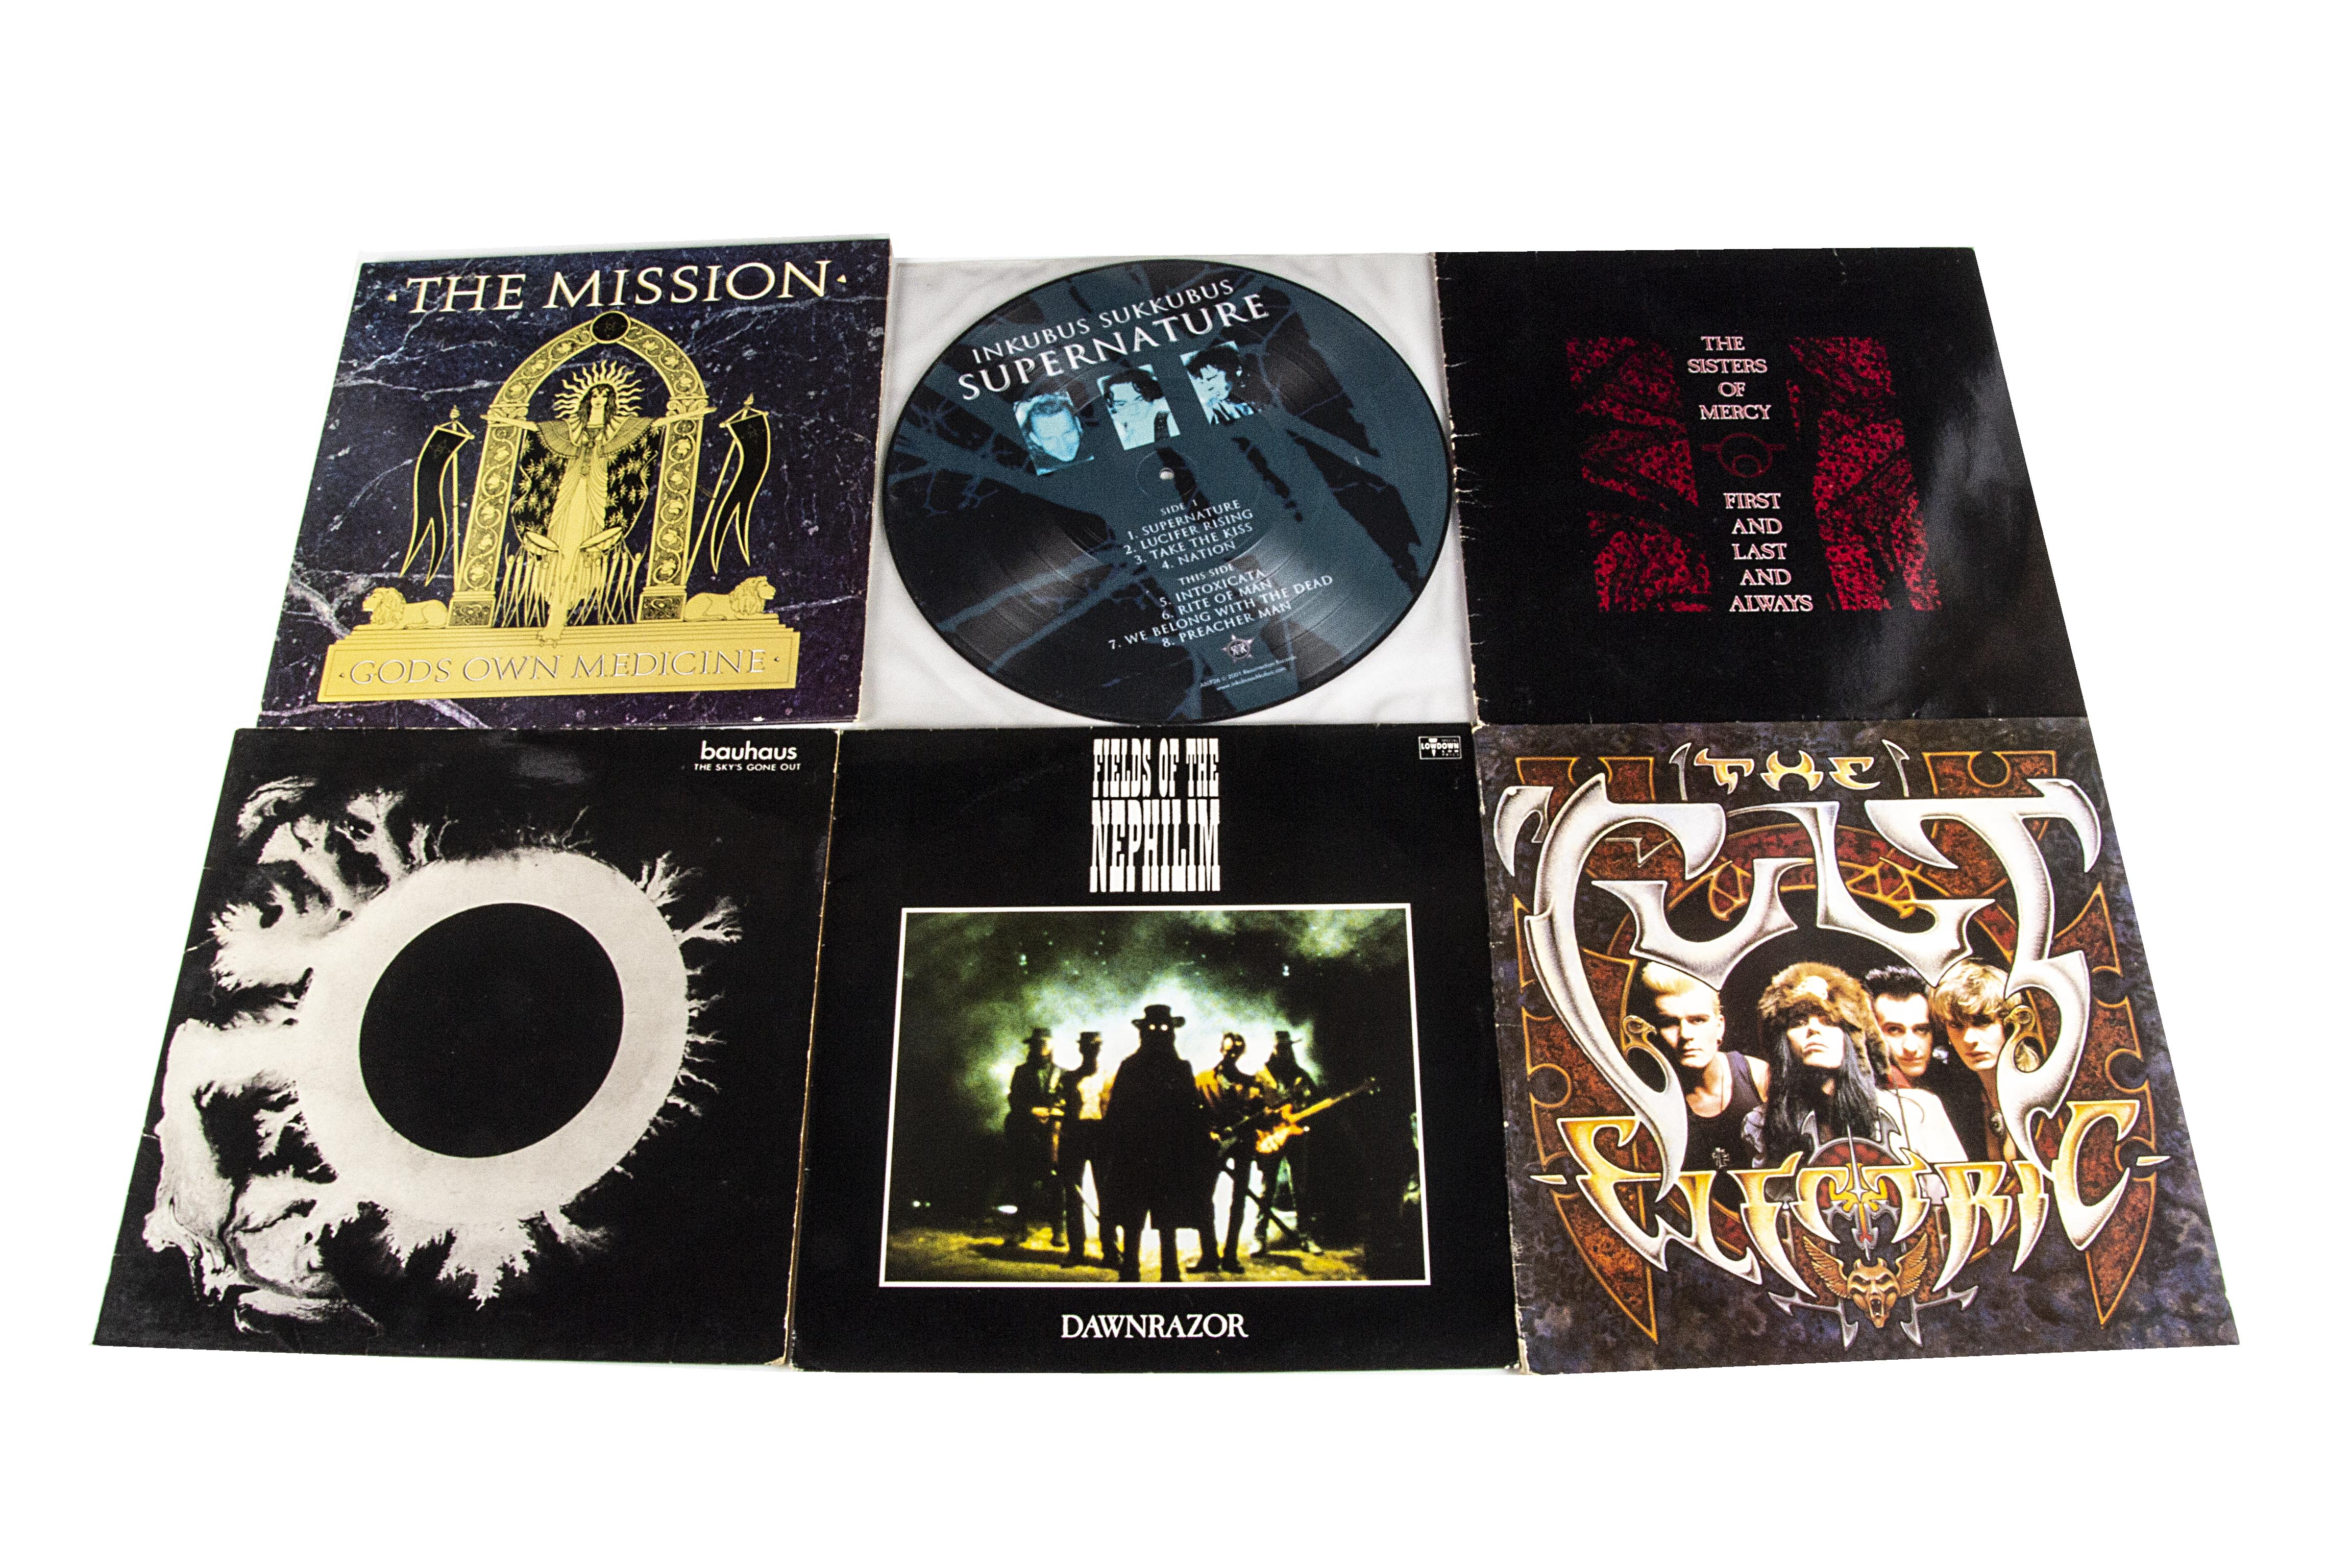 Goth Rock LPs, twenty albums of mainly Goth Rock with artists comprising Bauhaus (five albums),